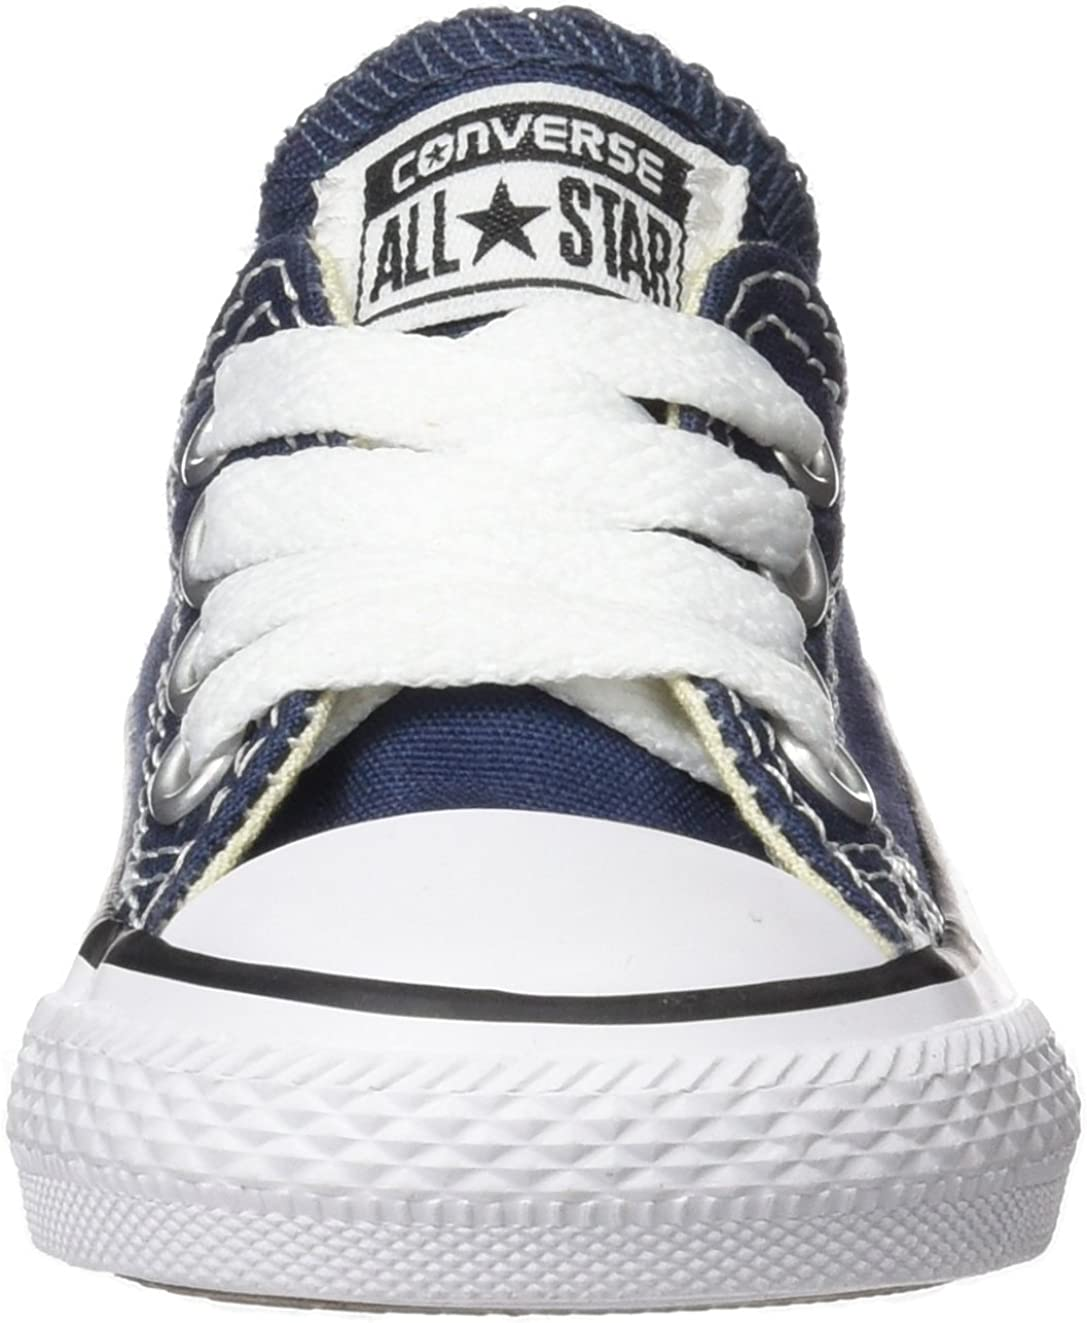 Baskets mode mixte enfant Converse Chuck Taylor All Star Wash Neon Ox